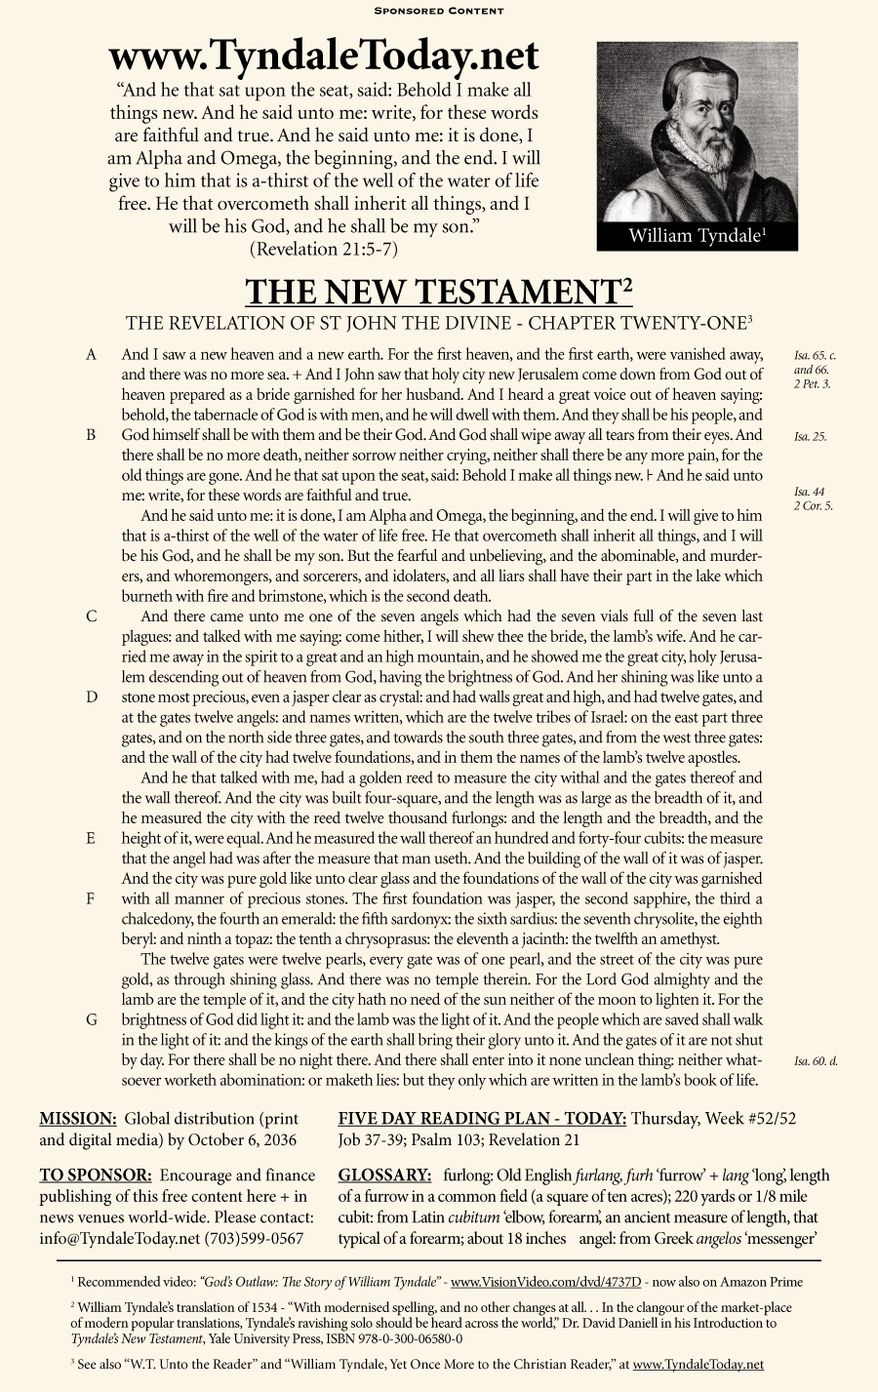 A daily reading of William Tyndale's 1534 translation of The New Testament from Tyndale Today. (Sponsored content December 28, 2017 in The Washington Times)